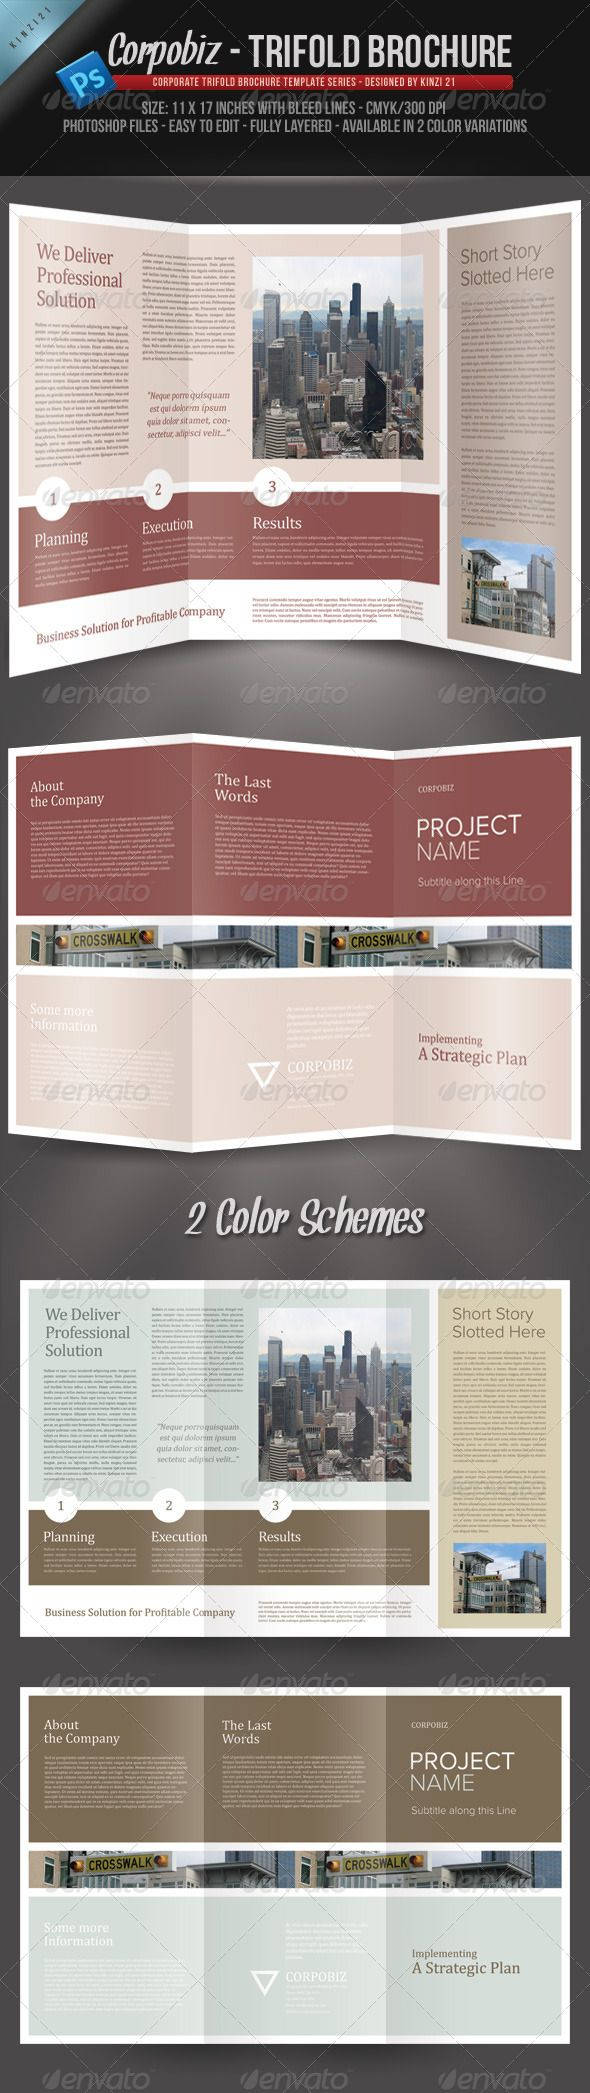 Brochures psd templates and templates on pinterest for Pinterest template psd